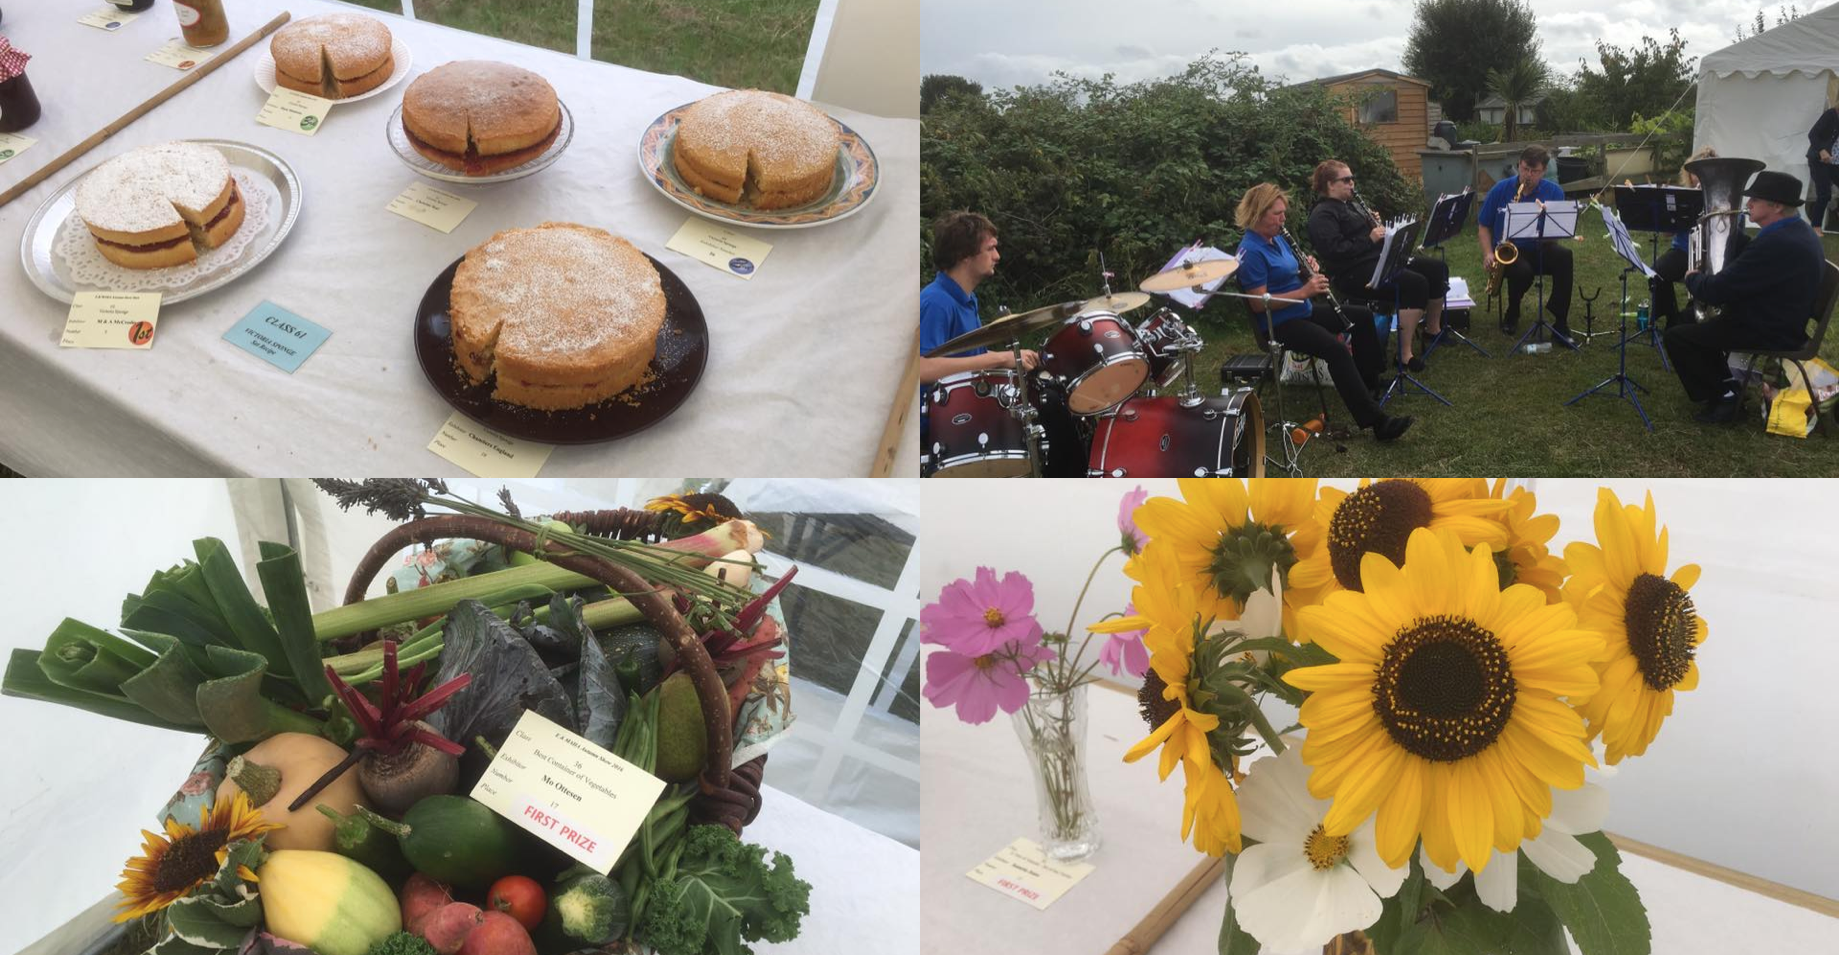 Annual Allotments Show continues to bring in the crowds